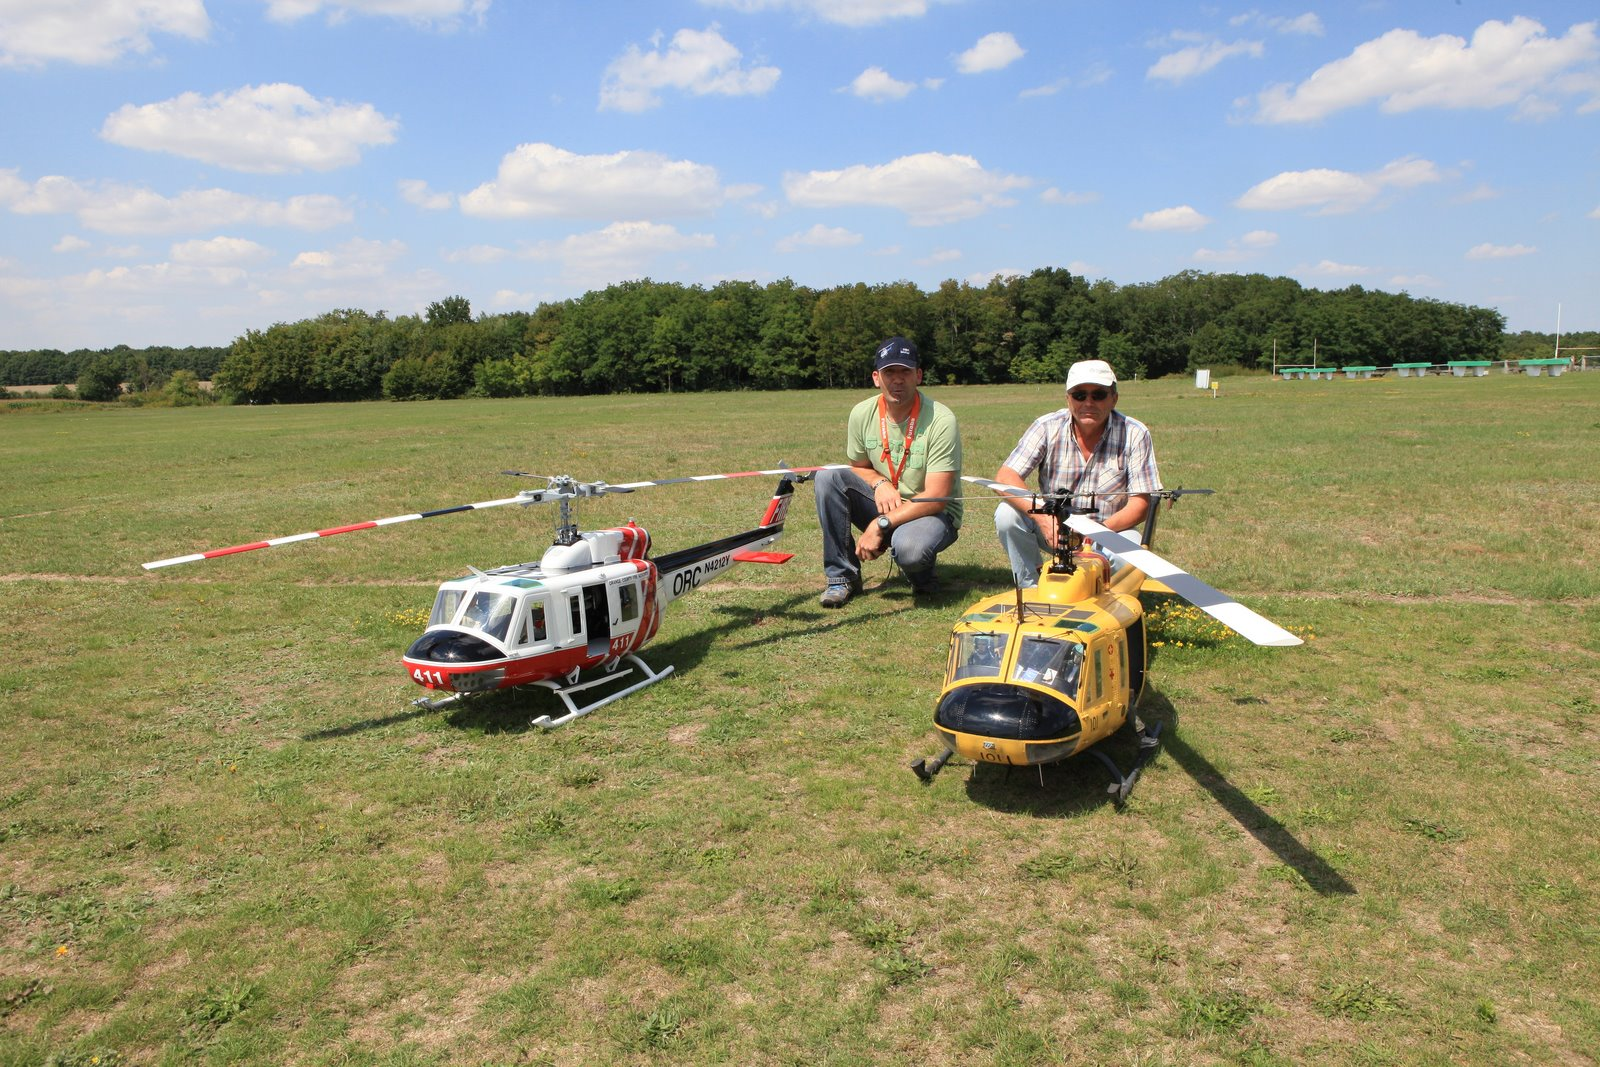 H licopt re rc ao t 2011 for Helicoptere rc electrique exterieur